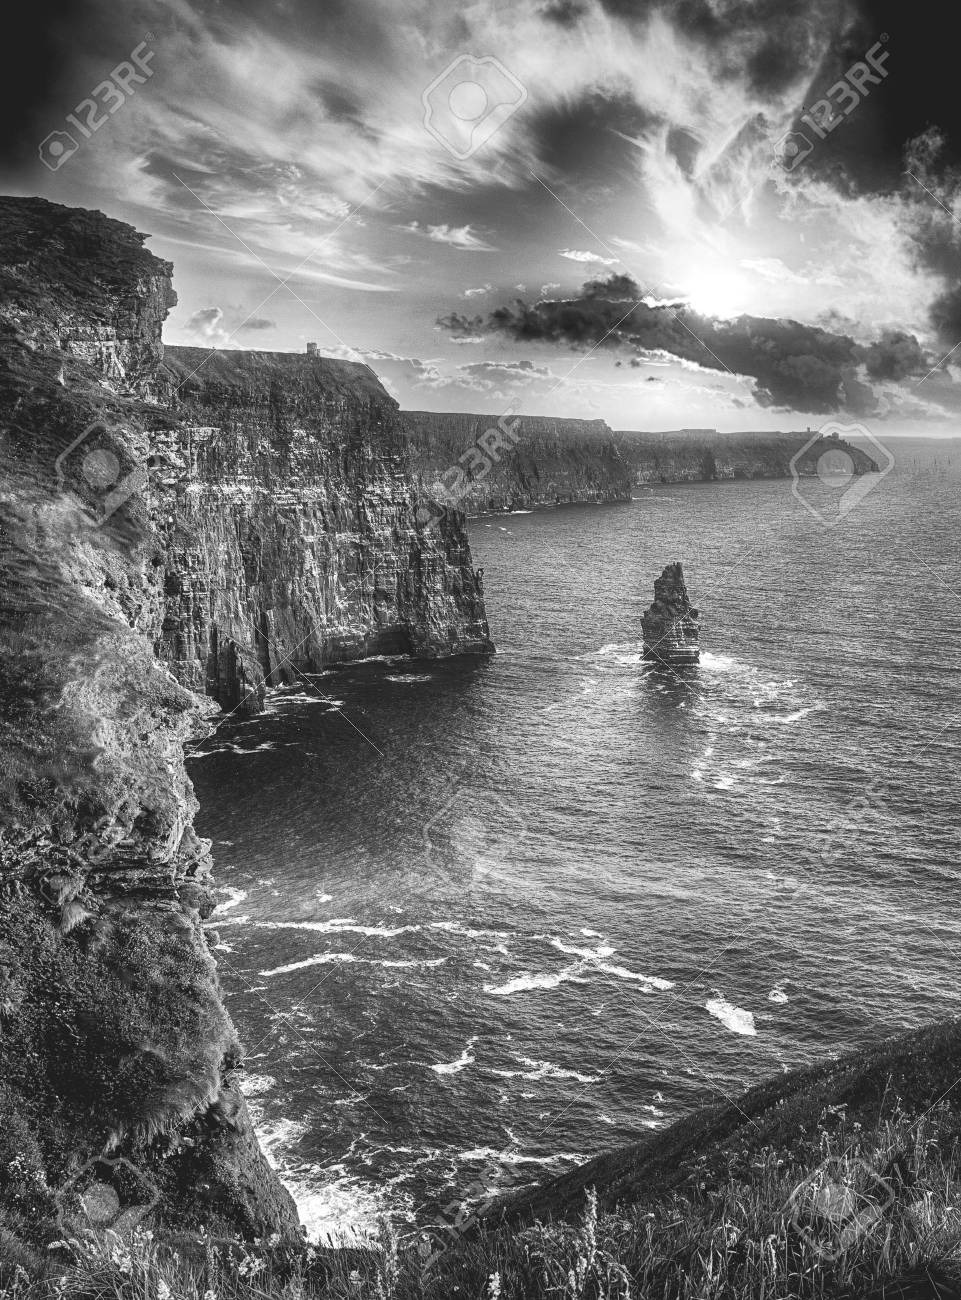 Epic black and white photograph of the world famous cliffs of moher in county clare